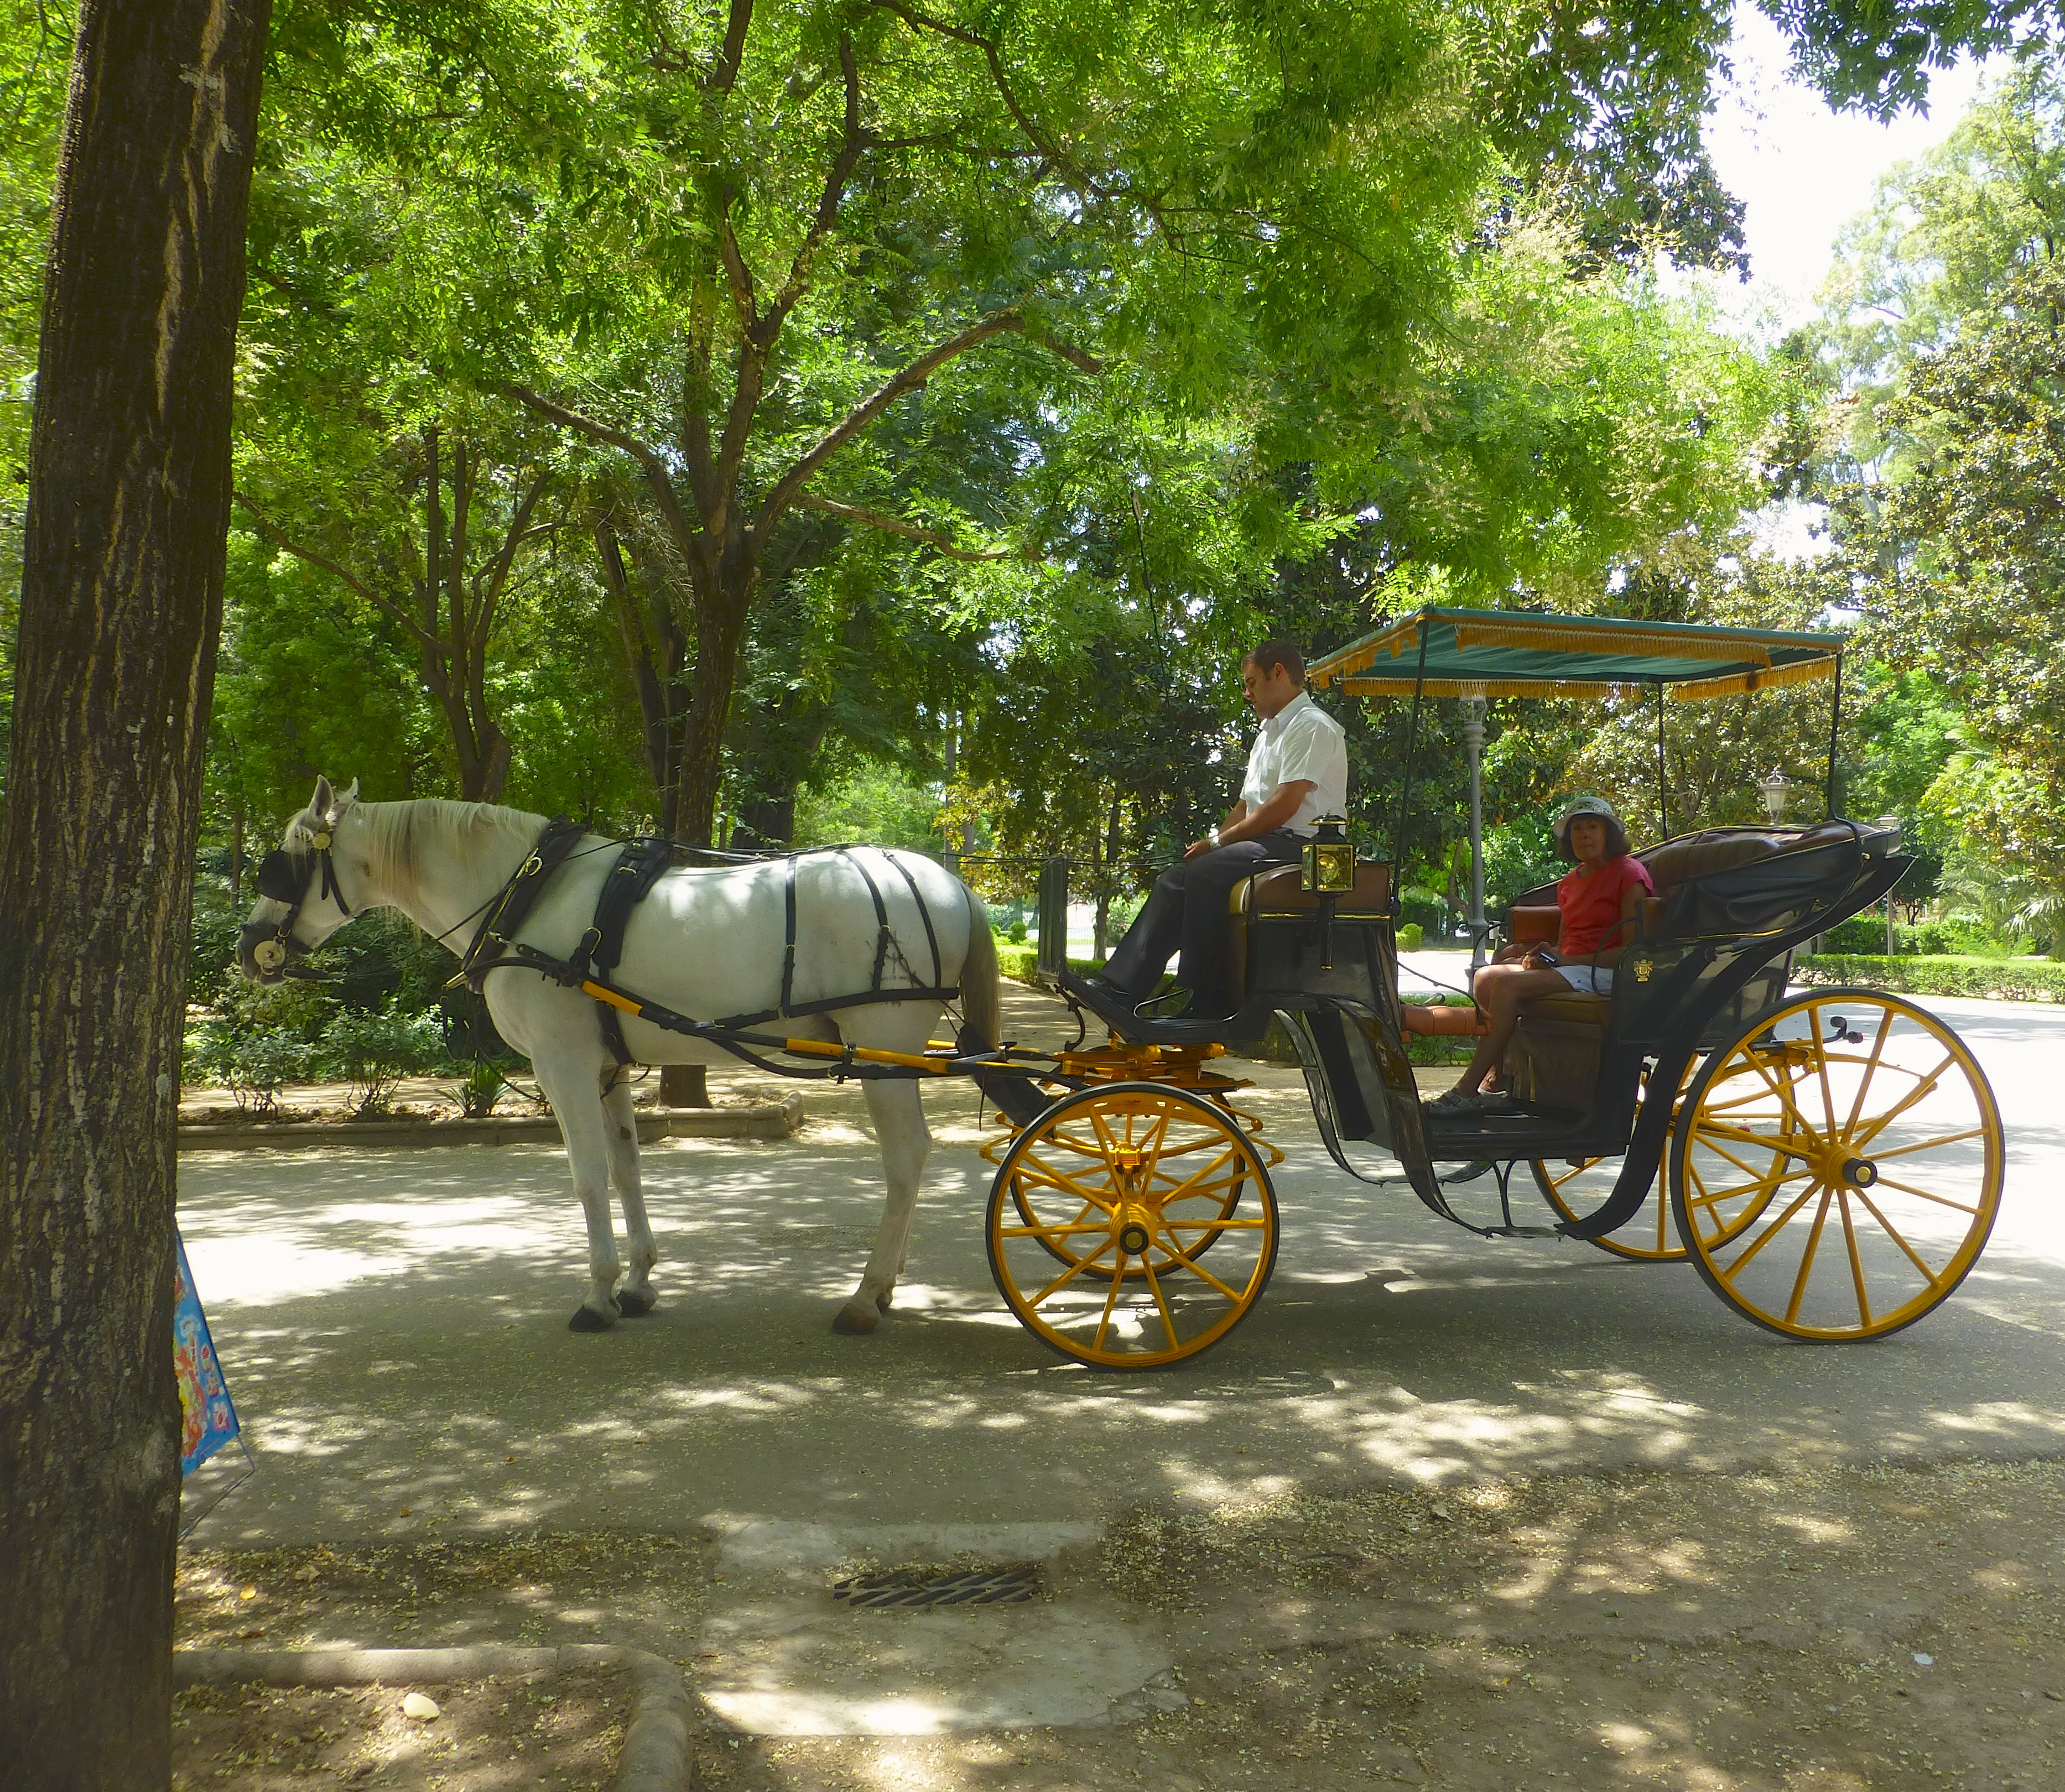 Two women in a horse drawn carriage in Seville Spain